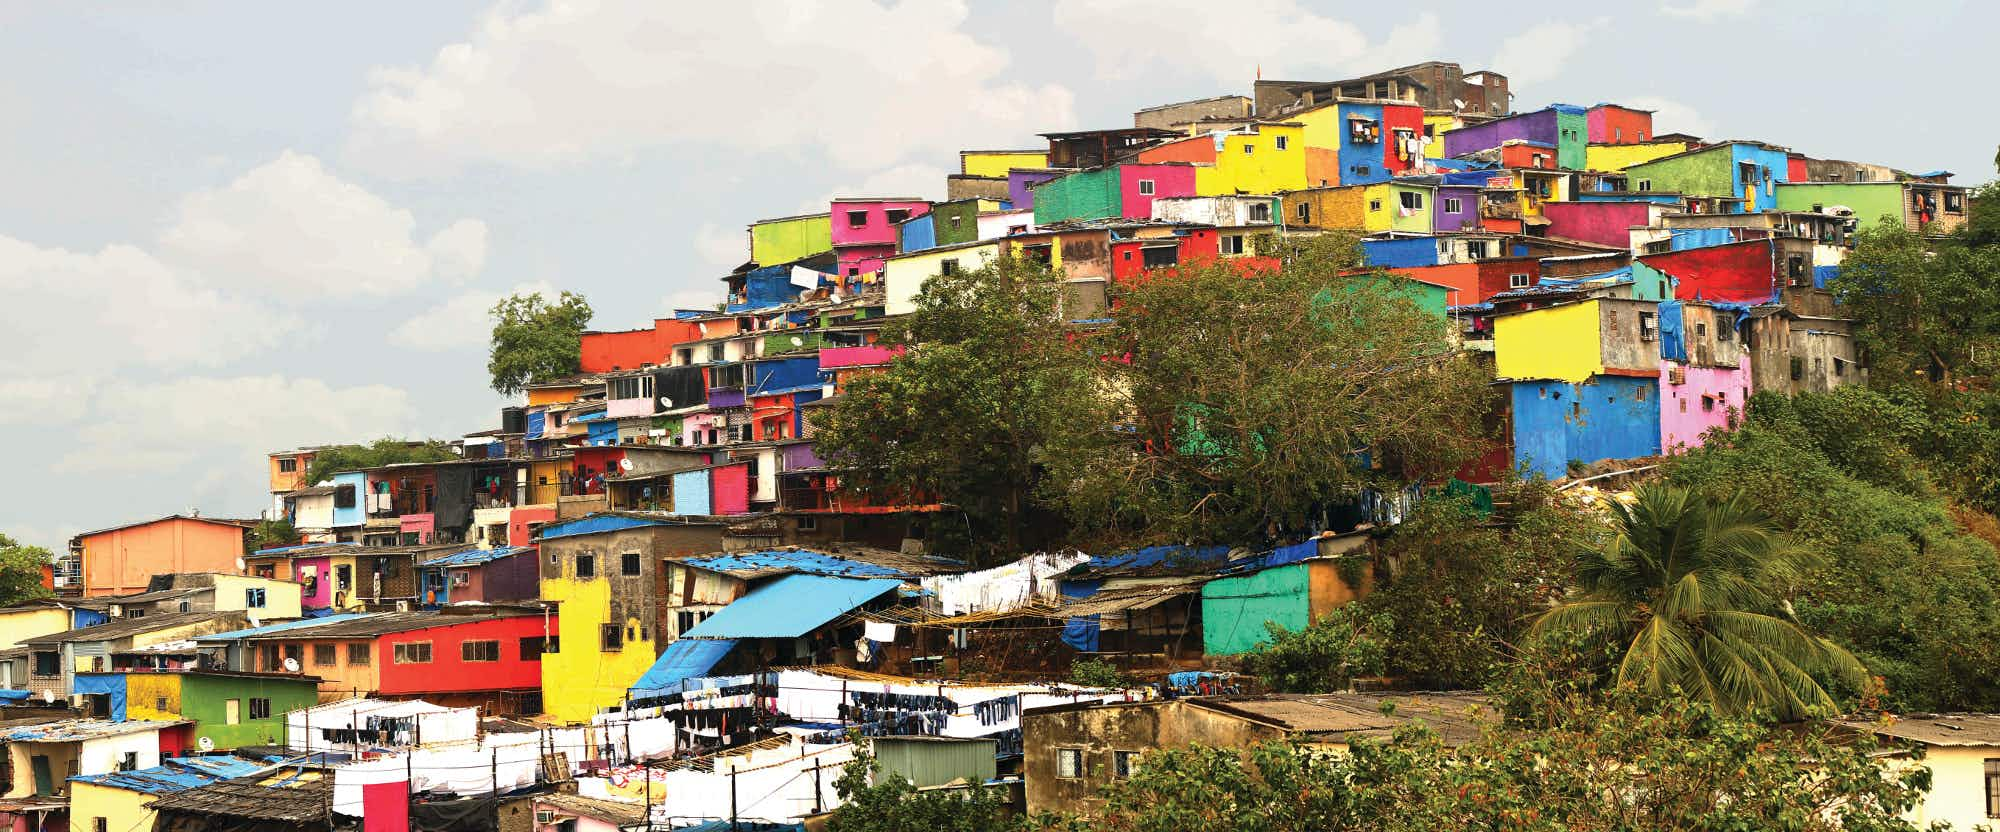 A slum in Mumbai was given a make-over to look like  the Positano of India